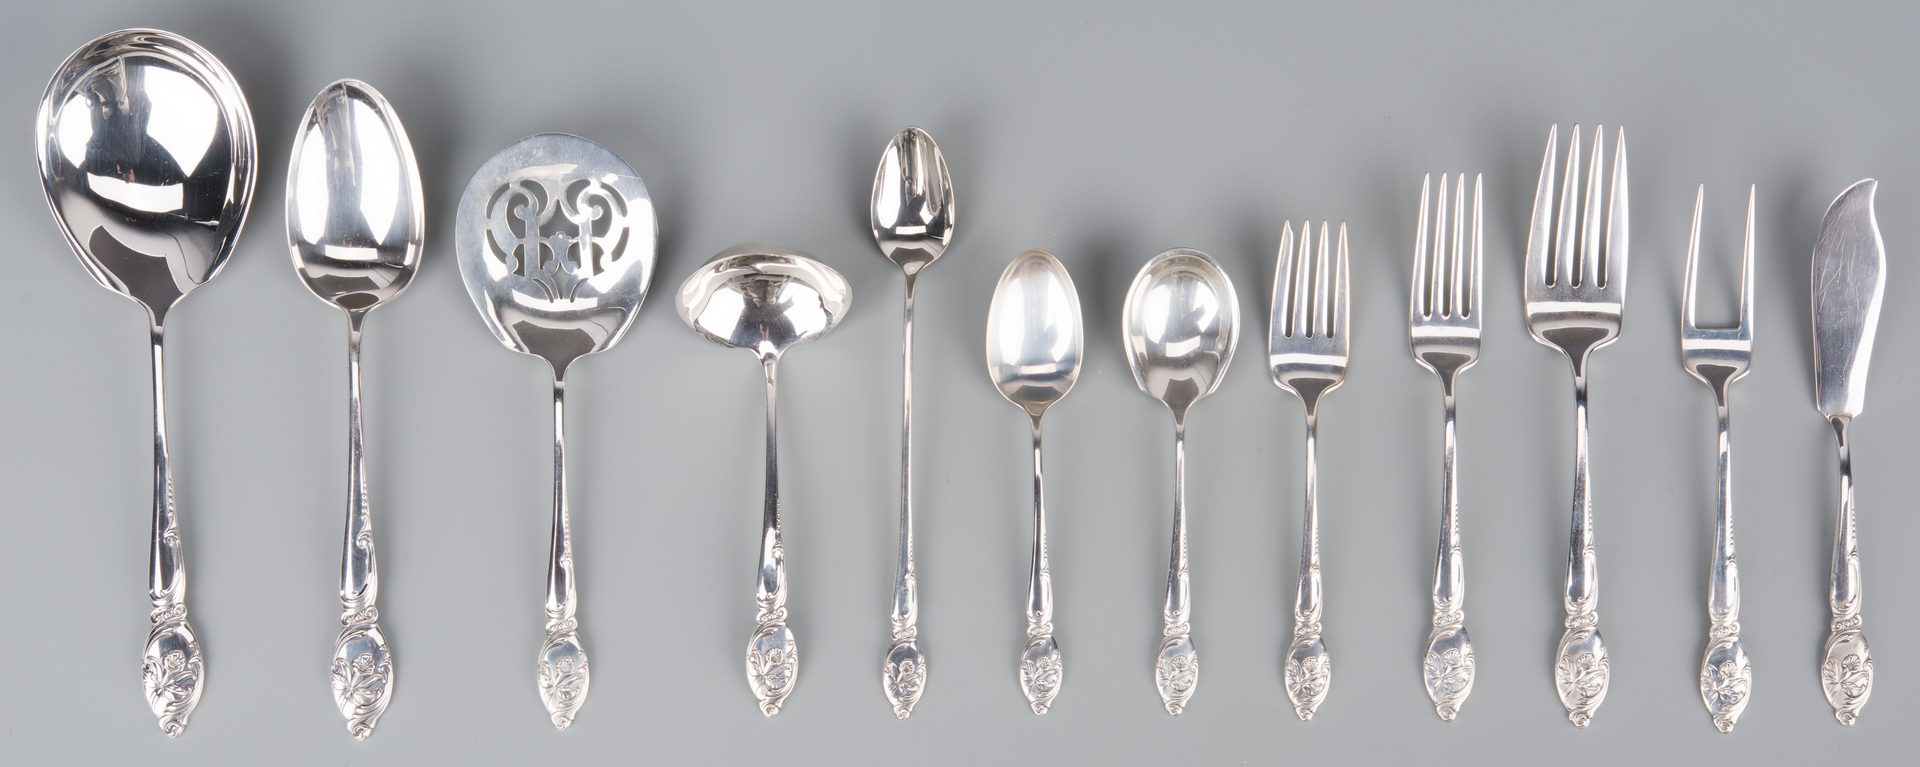 Lot 372: Westmorland Enchanted Orchid Sterling Flatware, 85 pcs